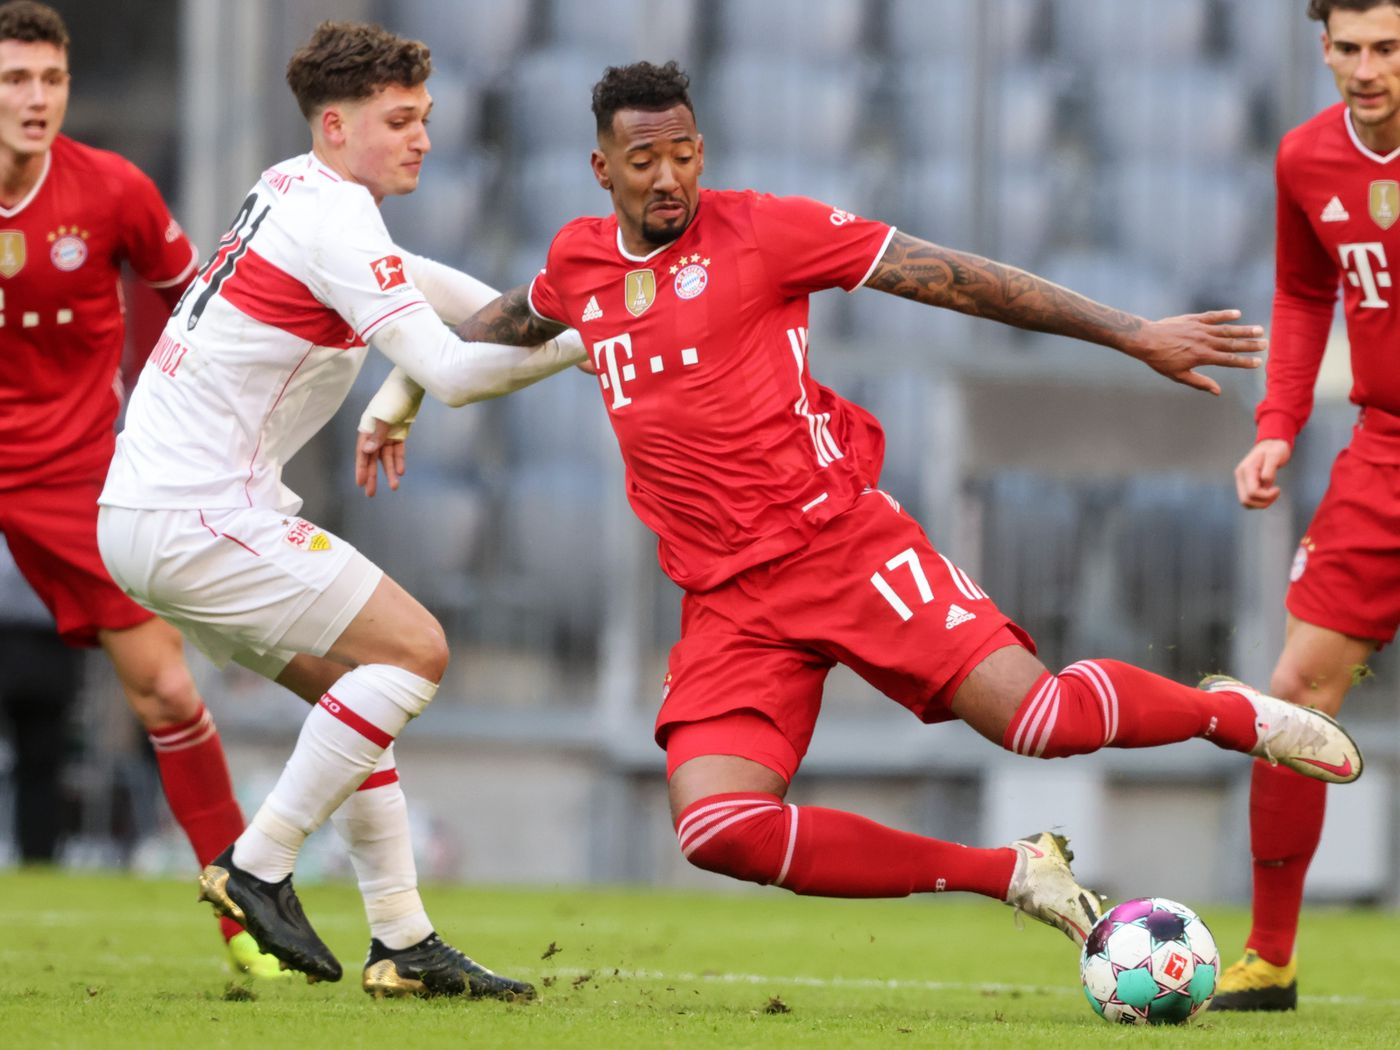 Report: Bayern Munich informs Jerome Boateng that his contract will not be  extended (Update) - Bavarian Football Works